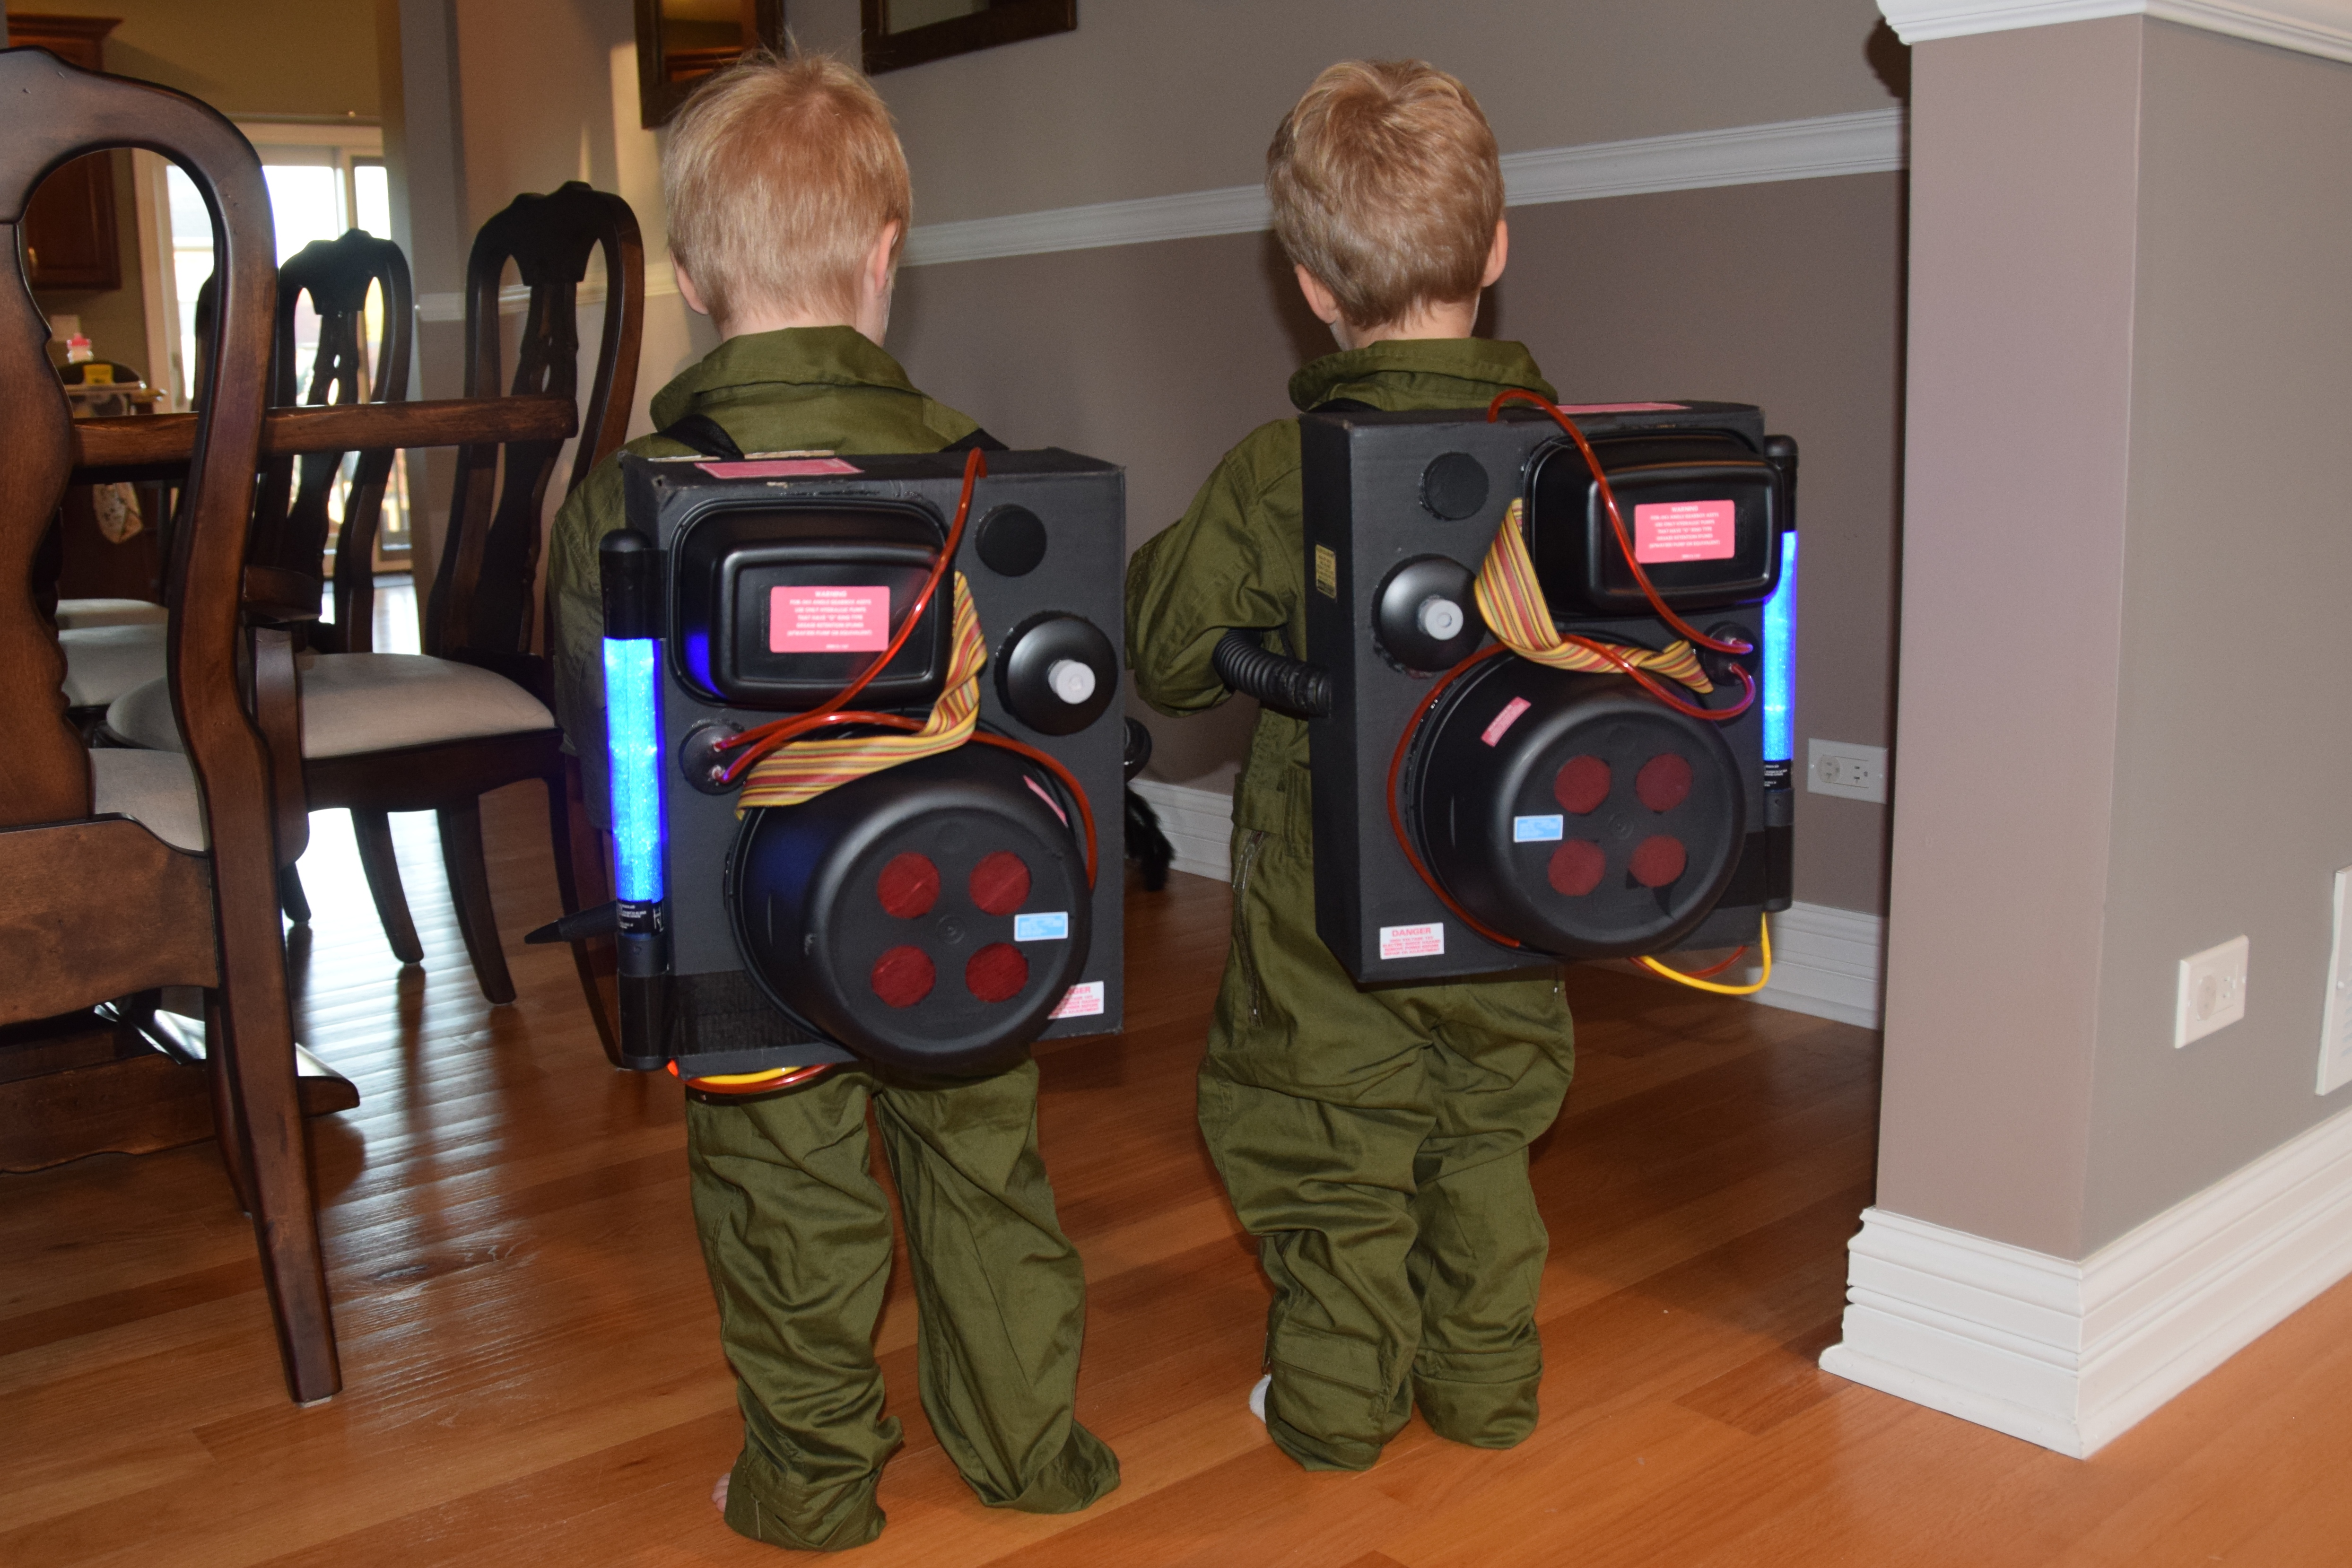 DIY Dollar Store Proton Pack | Projects In Parenting